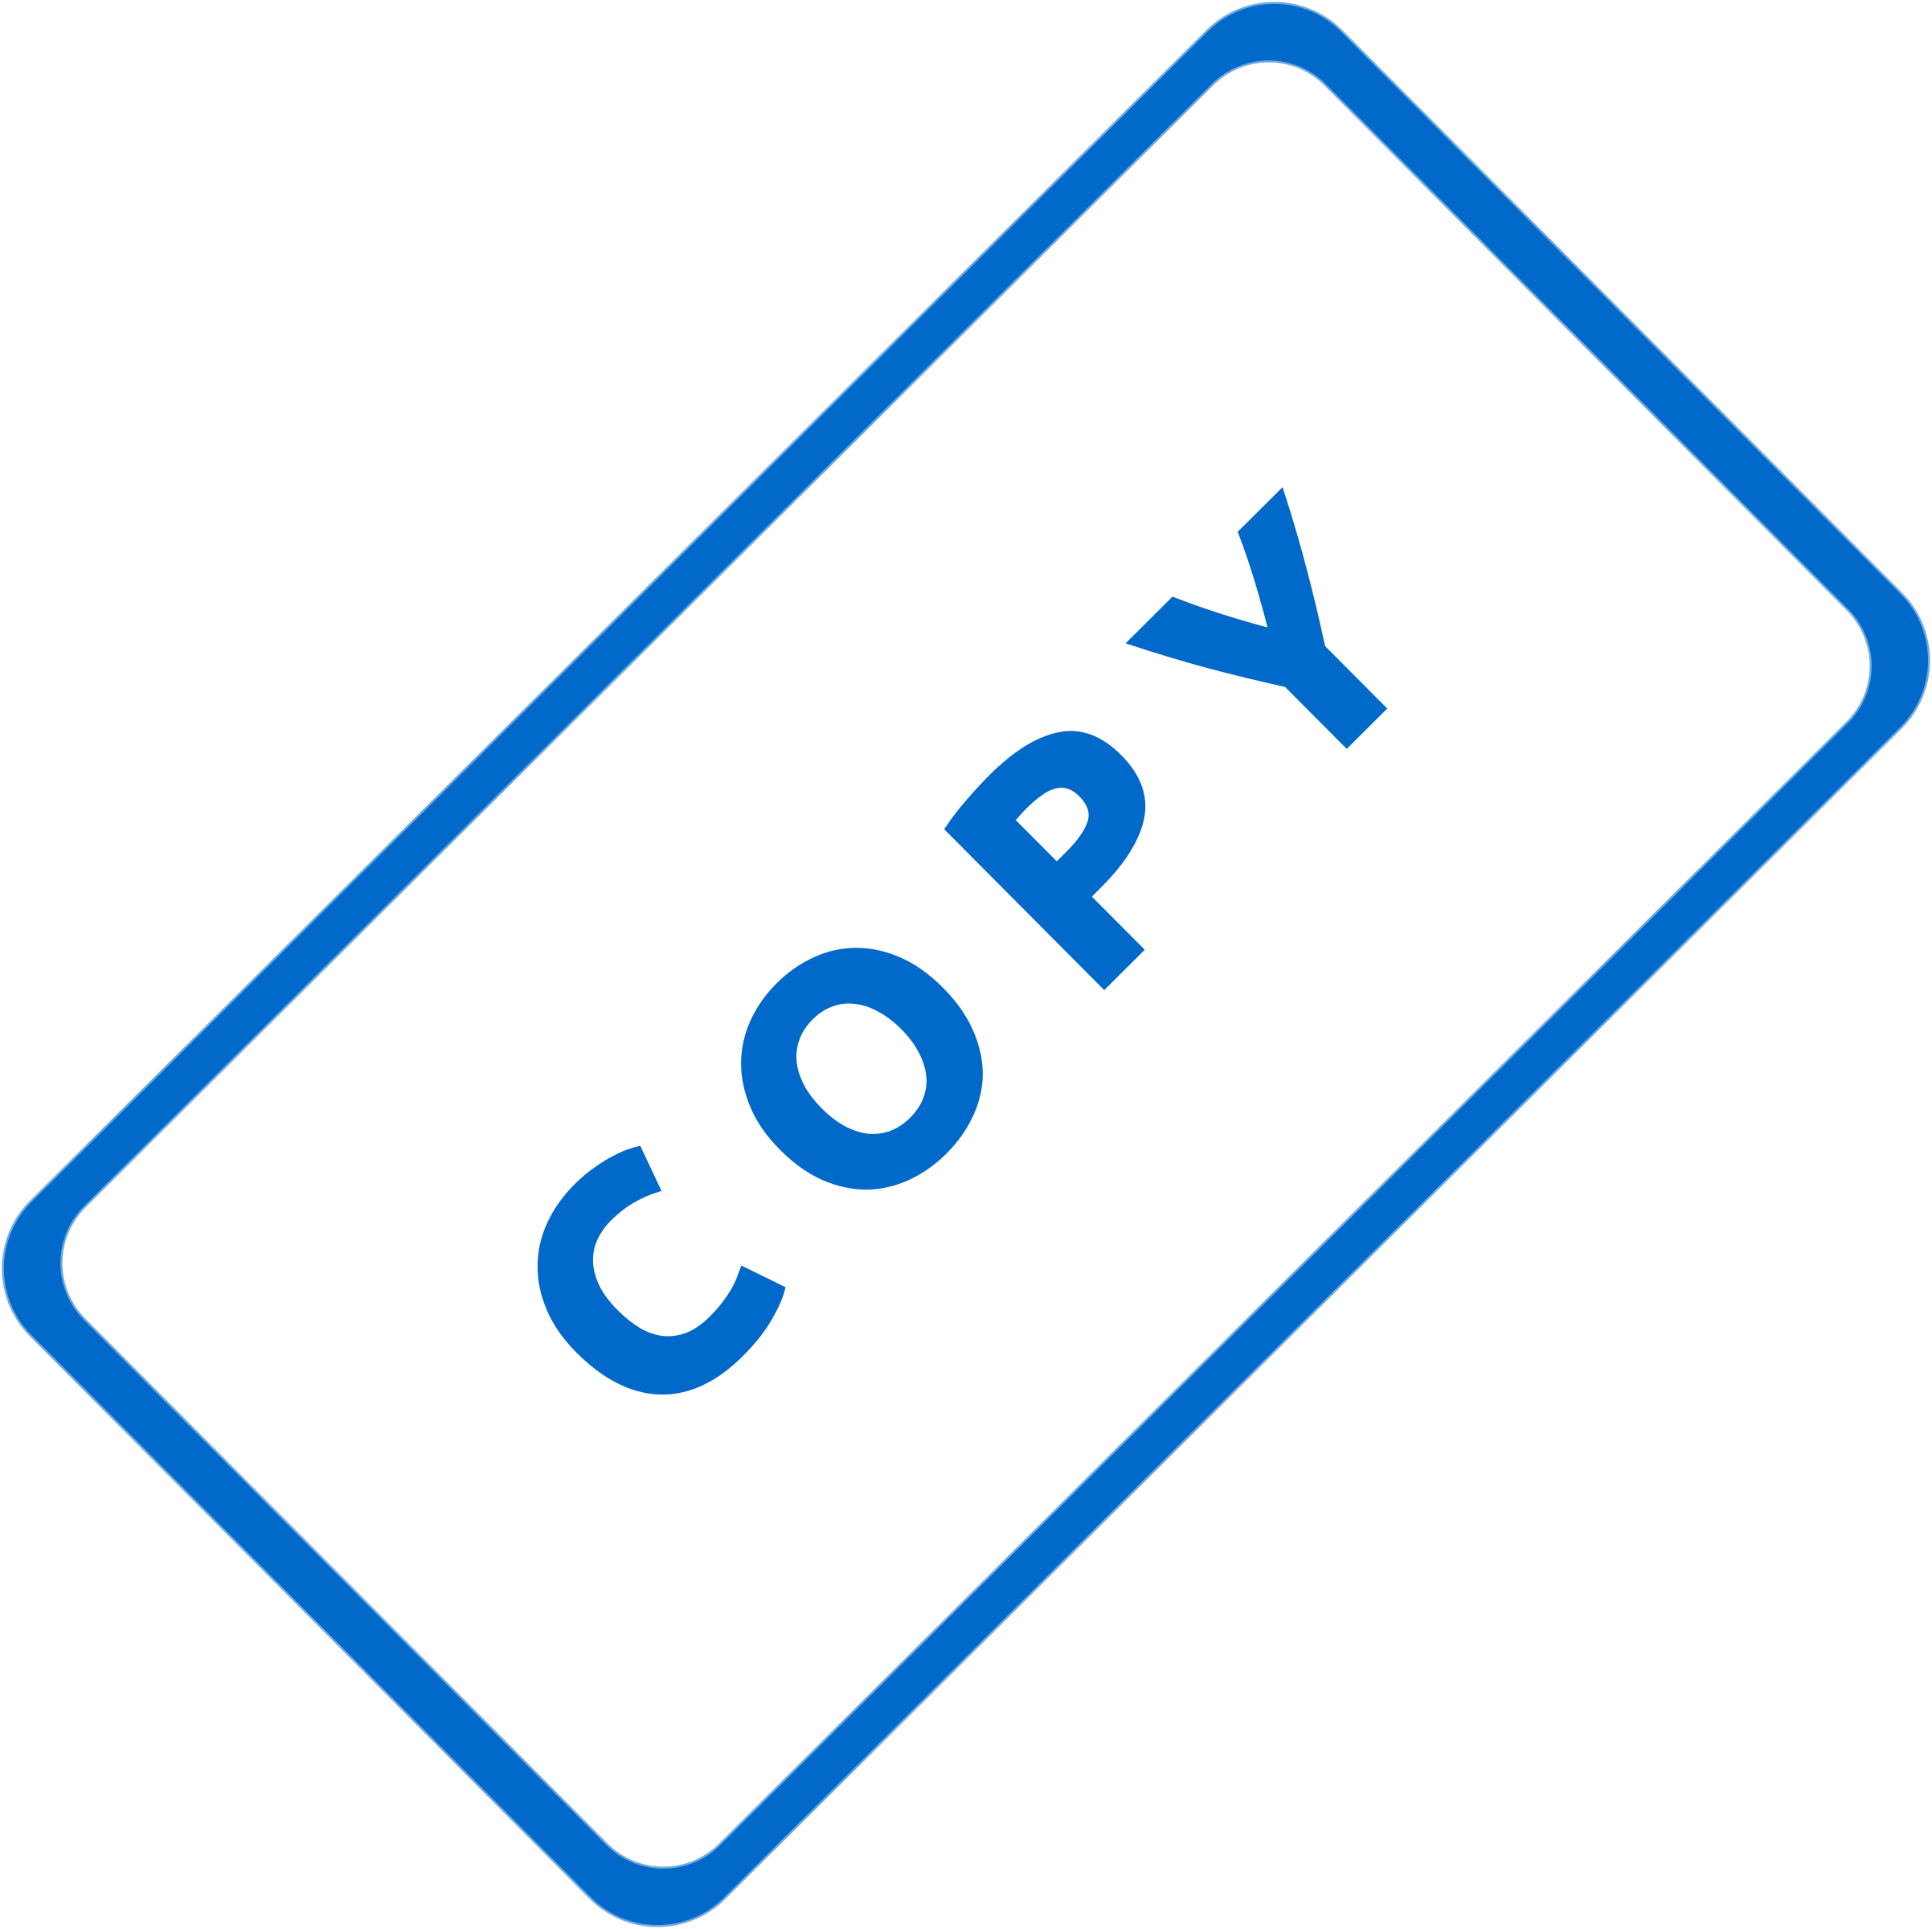 Copy Business Stamp 1 Icons PNG - Free PNG and Icons Downloads